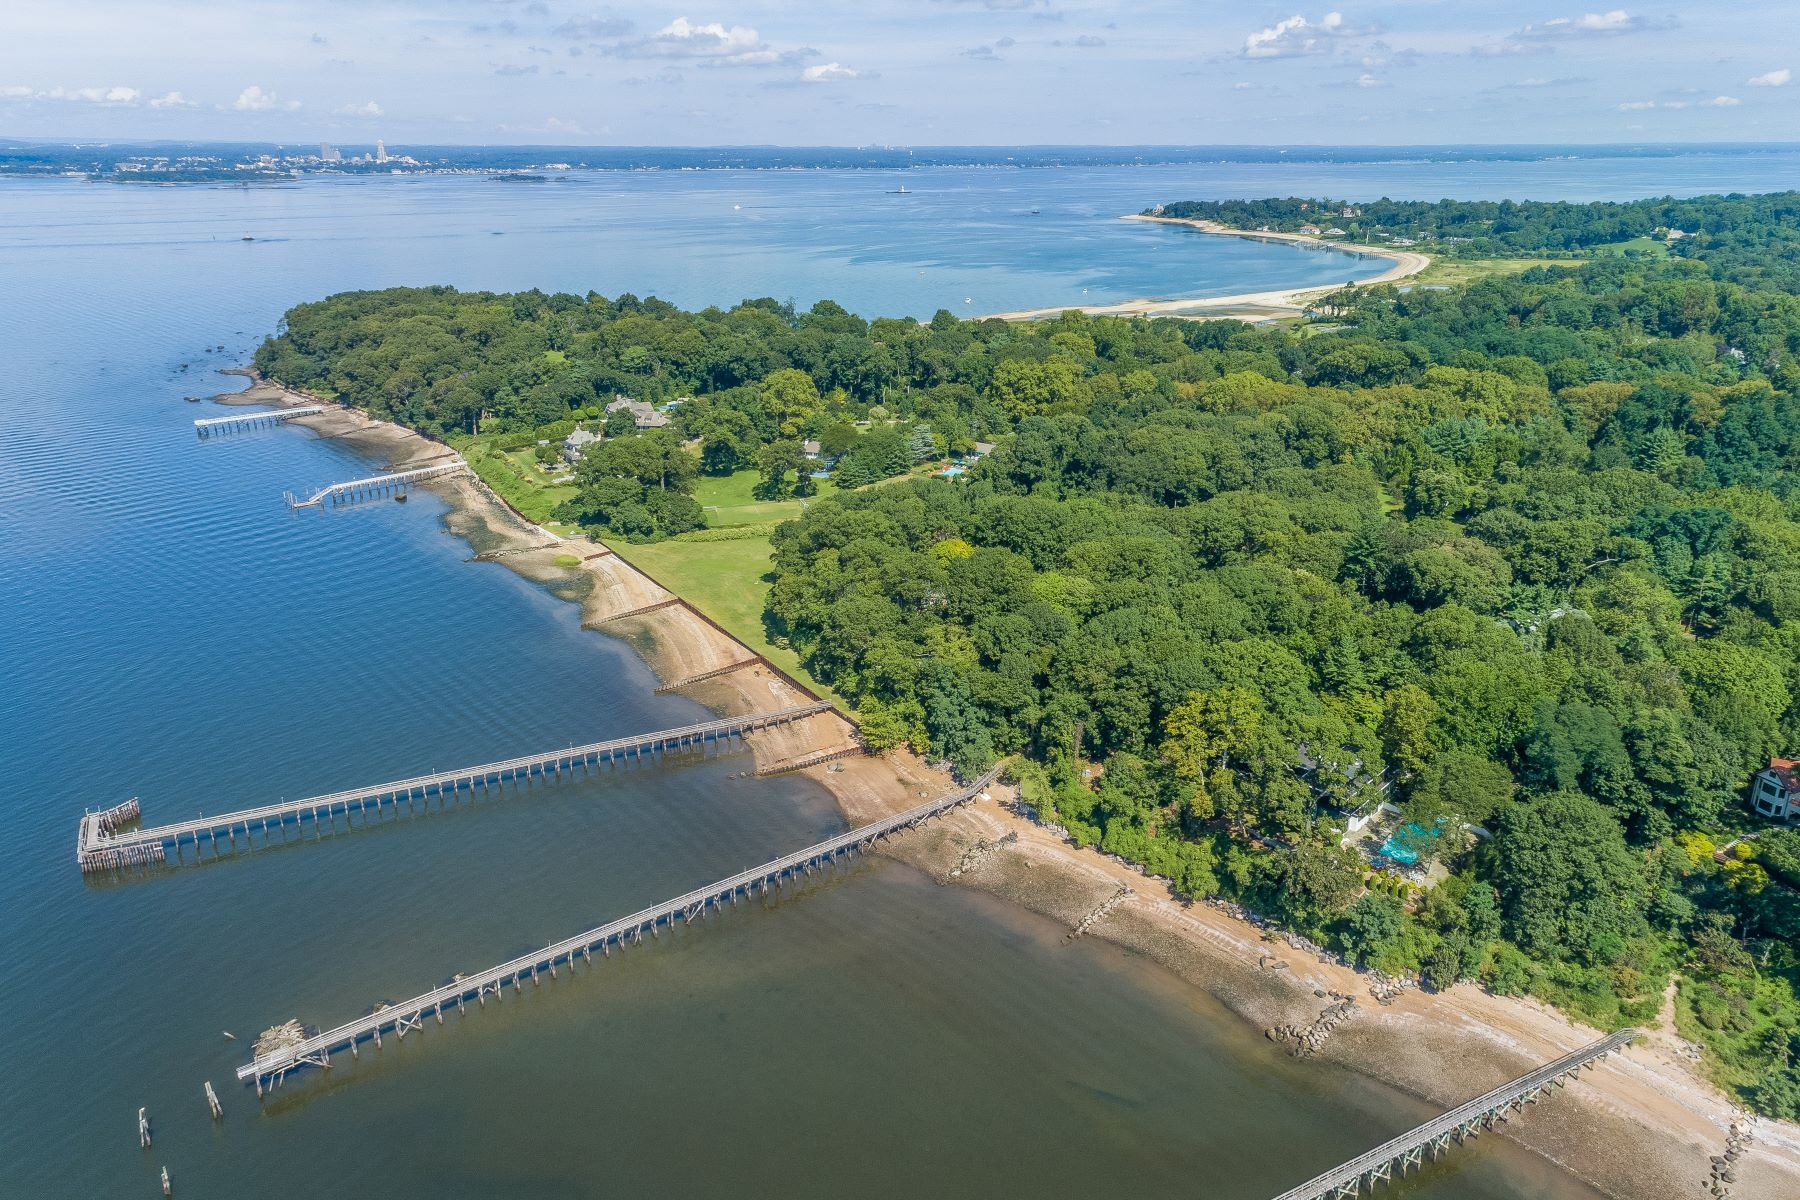 Single Family Homes for Sale at Sands Point 18 Hicks Ln Sands Point, New York 11050 United States